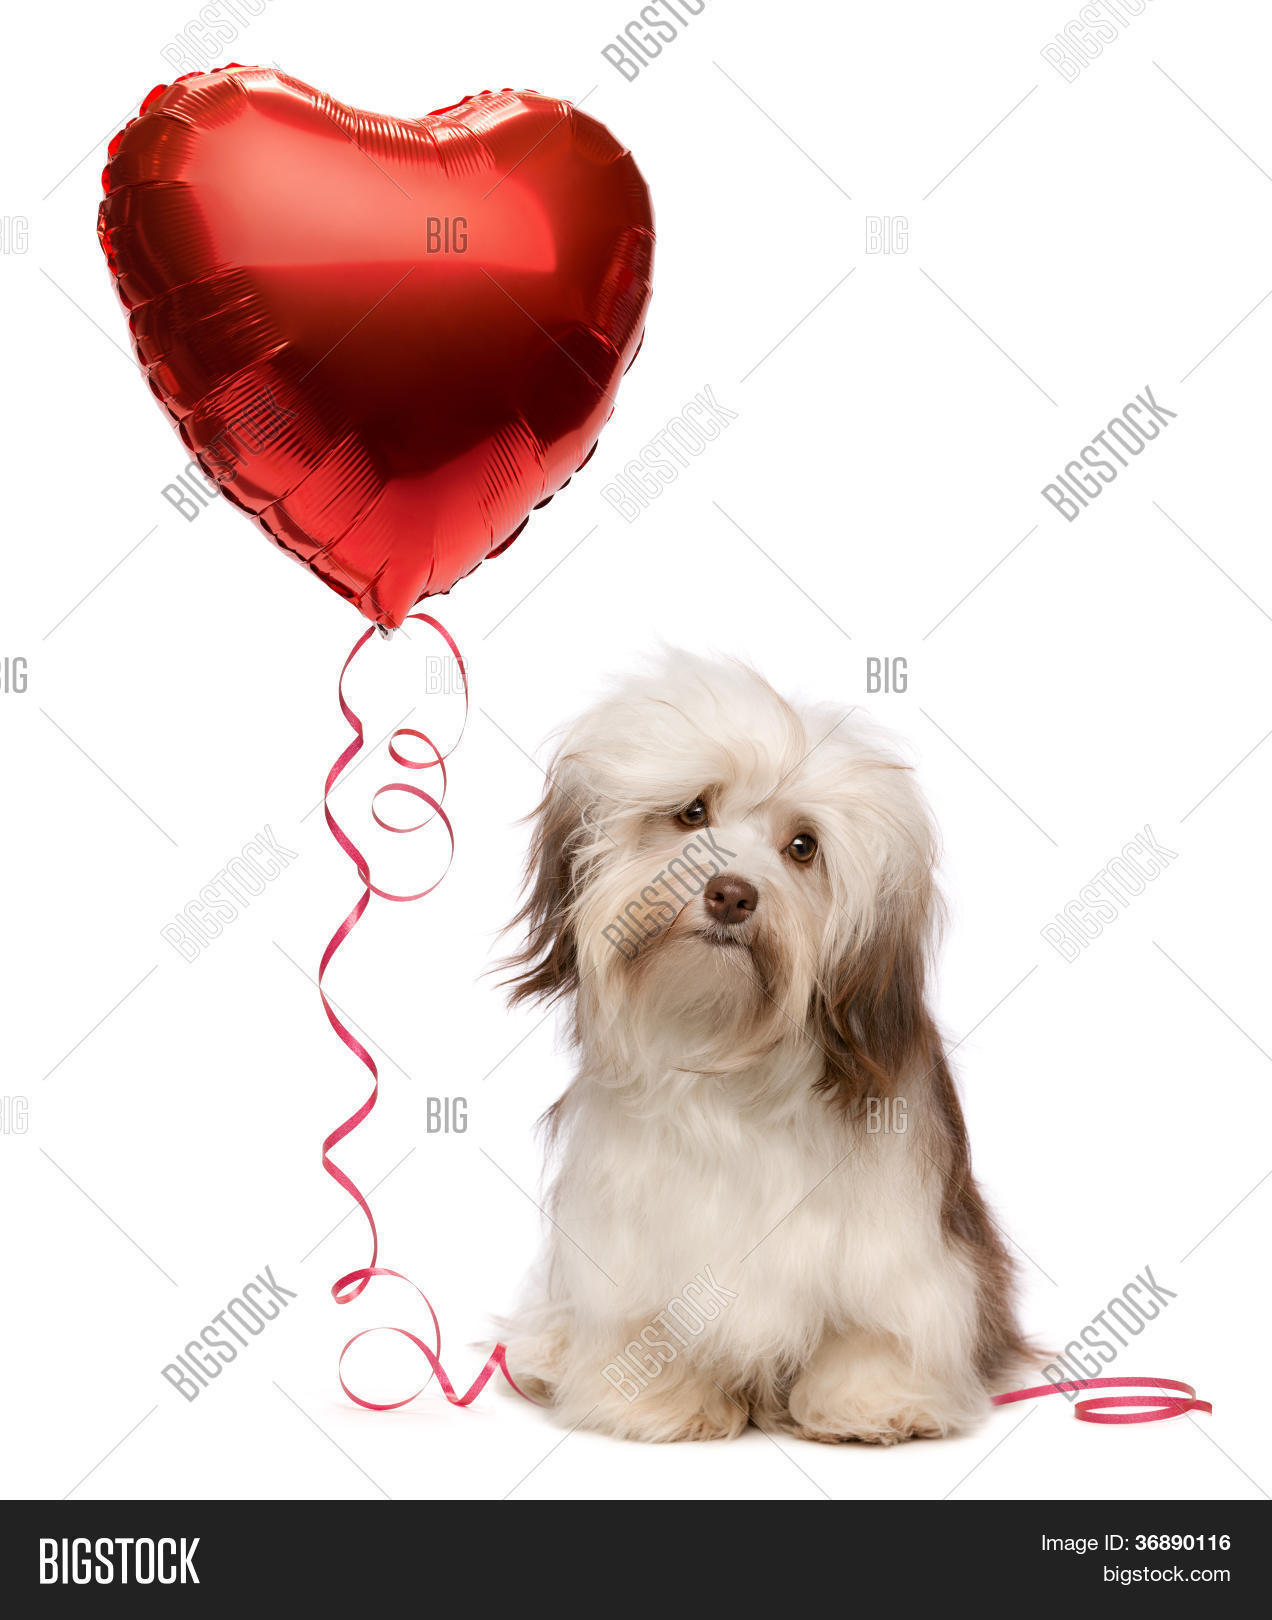 adorable,animal,attractive,await,balloon,beautiful,bichon,brown,chocolate,cute,day,dog,dreamer,female,friend,funny,hanker,havanais,havanese,heart,hold,holiday,honeymoon,indoors,keep,longhair,love,lovely,lover,lovesick,mammal,mini,pedigree,pet,playful,portrait,puppy,purebred,red,romantic,sitting,soft,studio,sweet,valentine,white,wooer,young